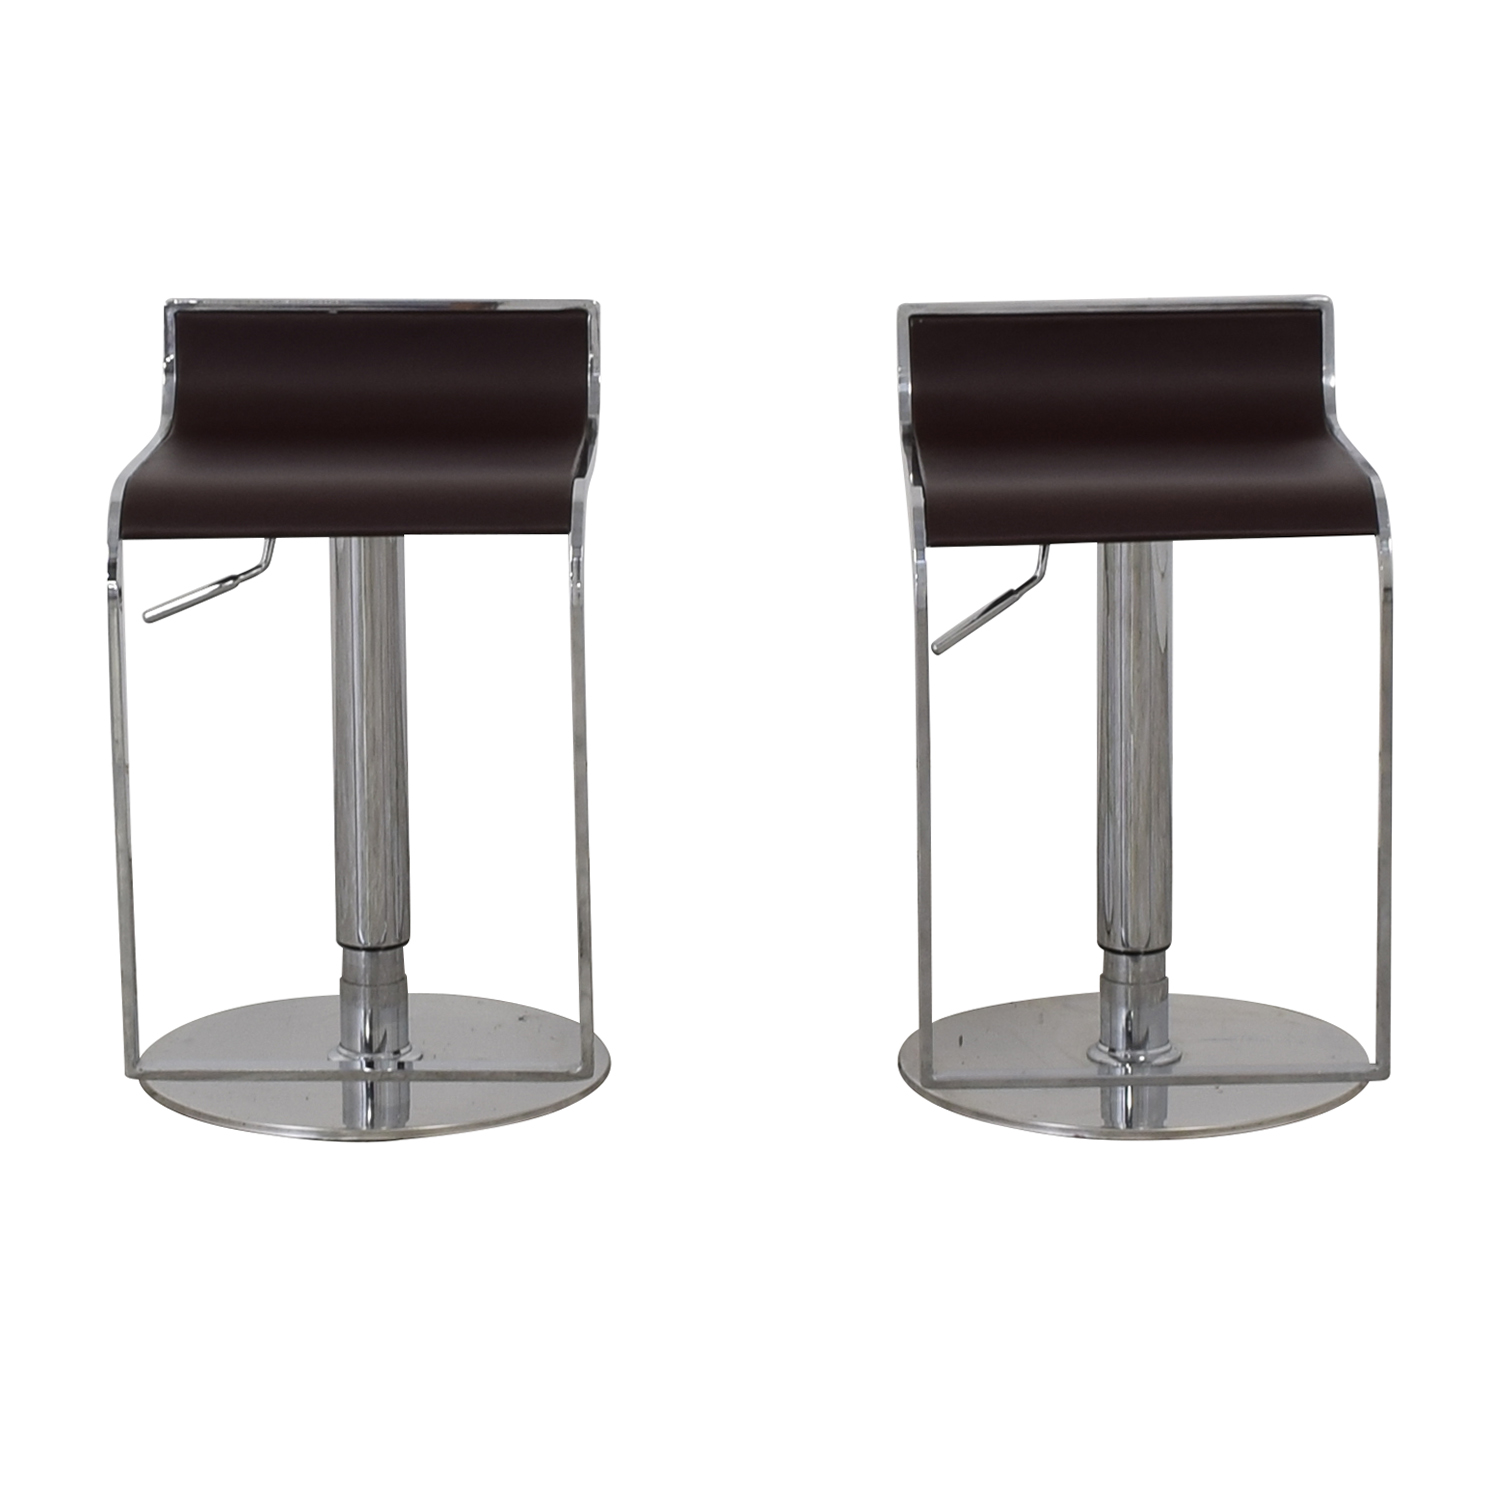 Jensen-Lewis Jensen-Lewis Adjustable Bar Stools price